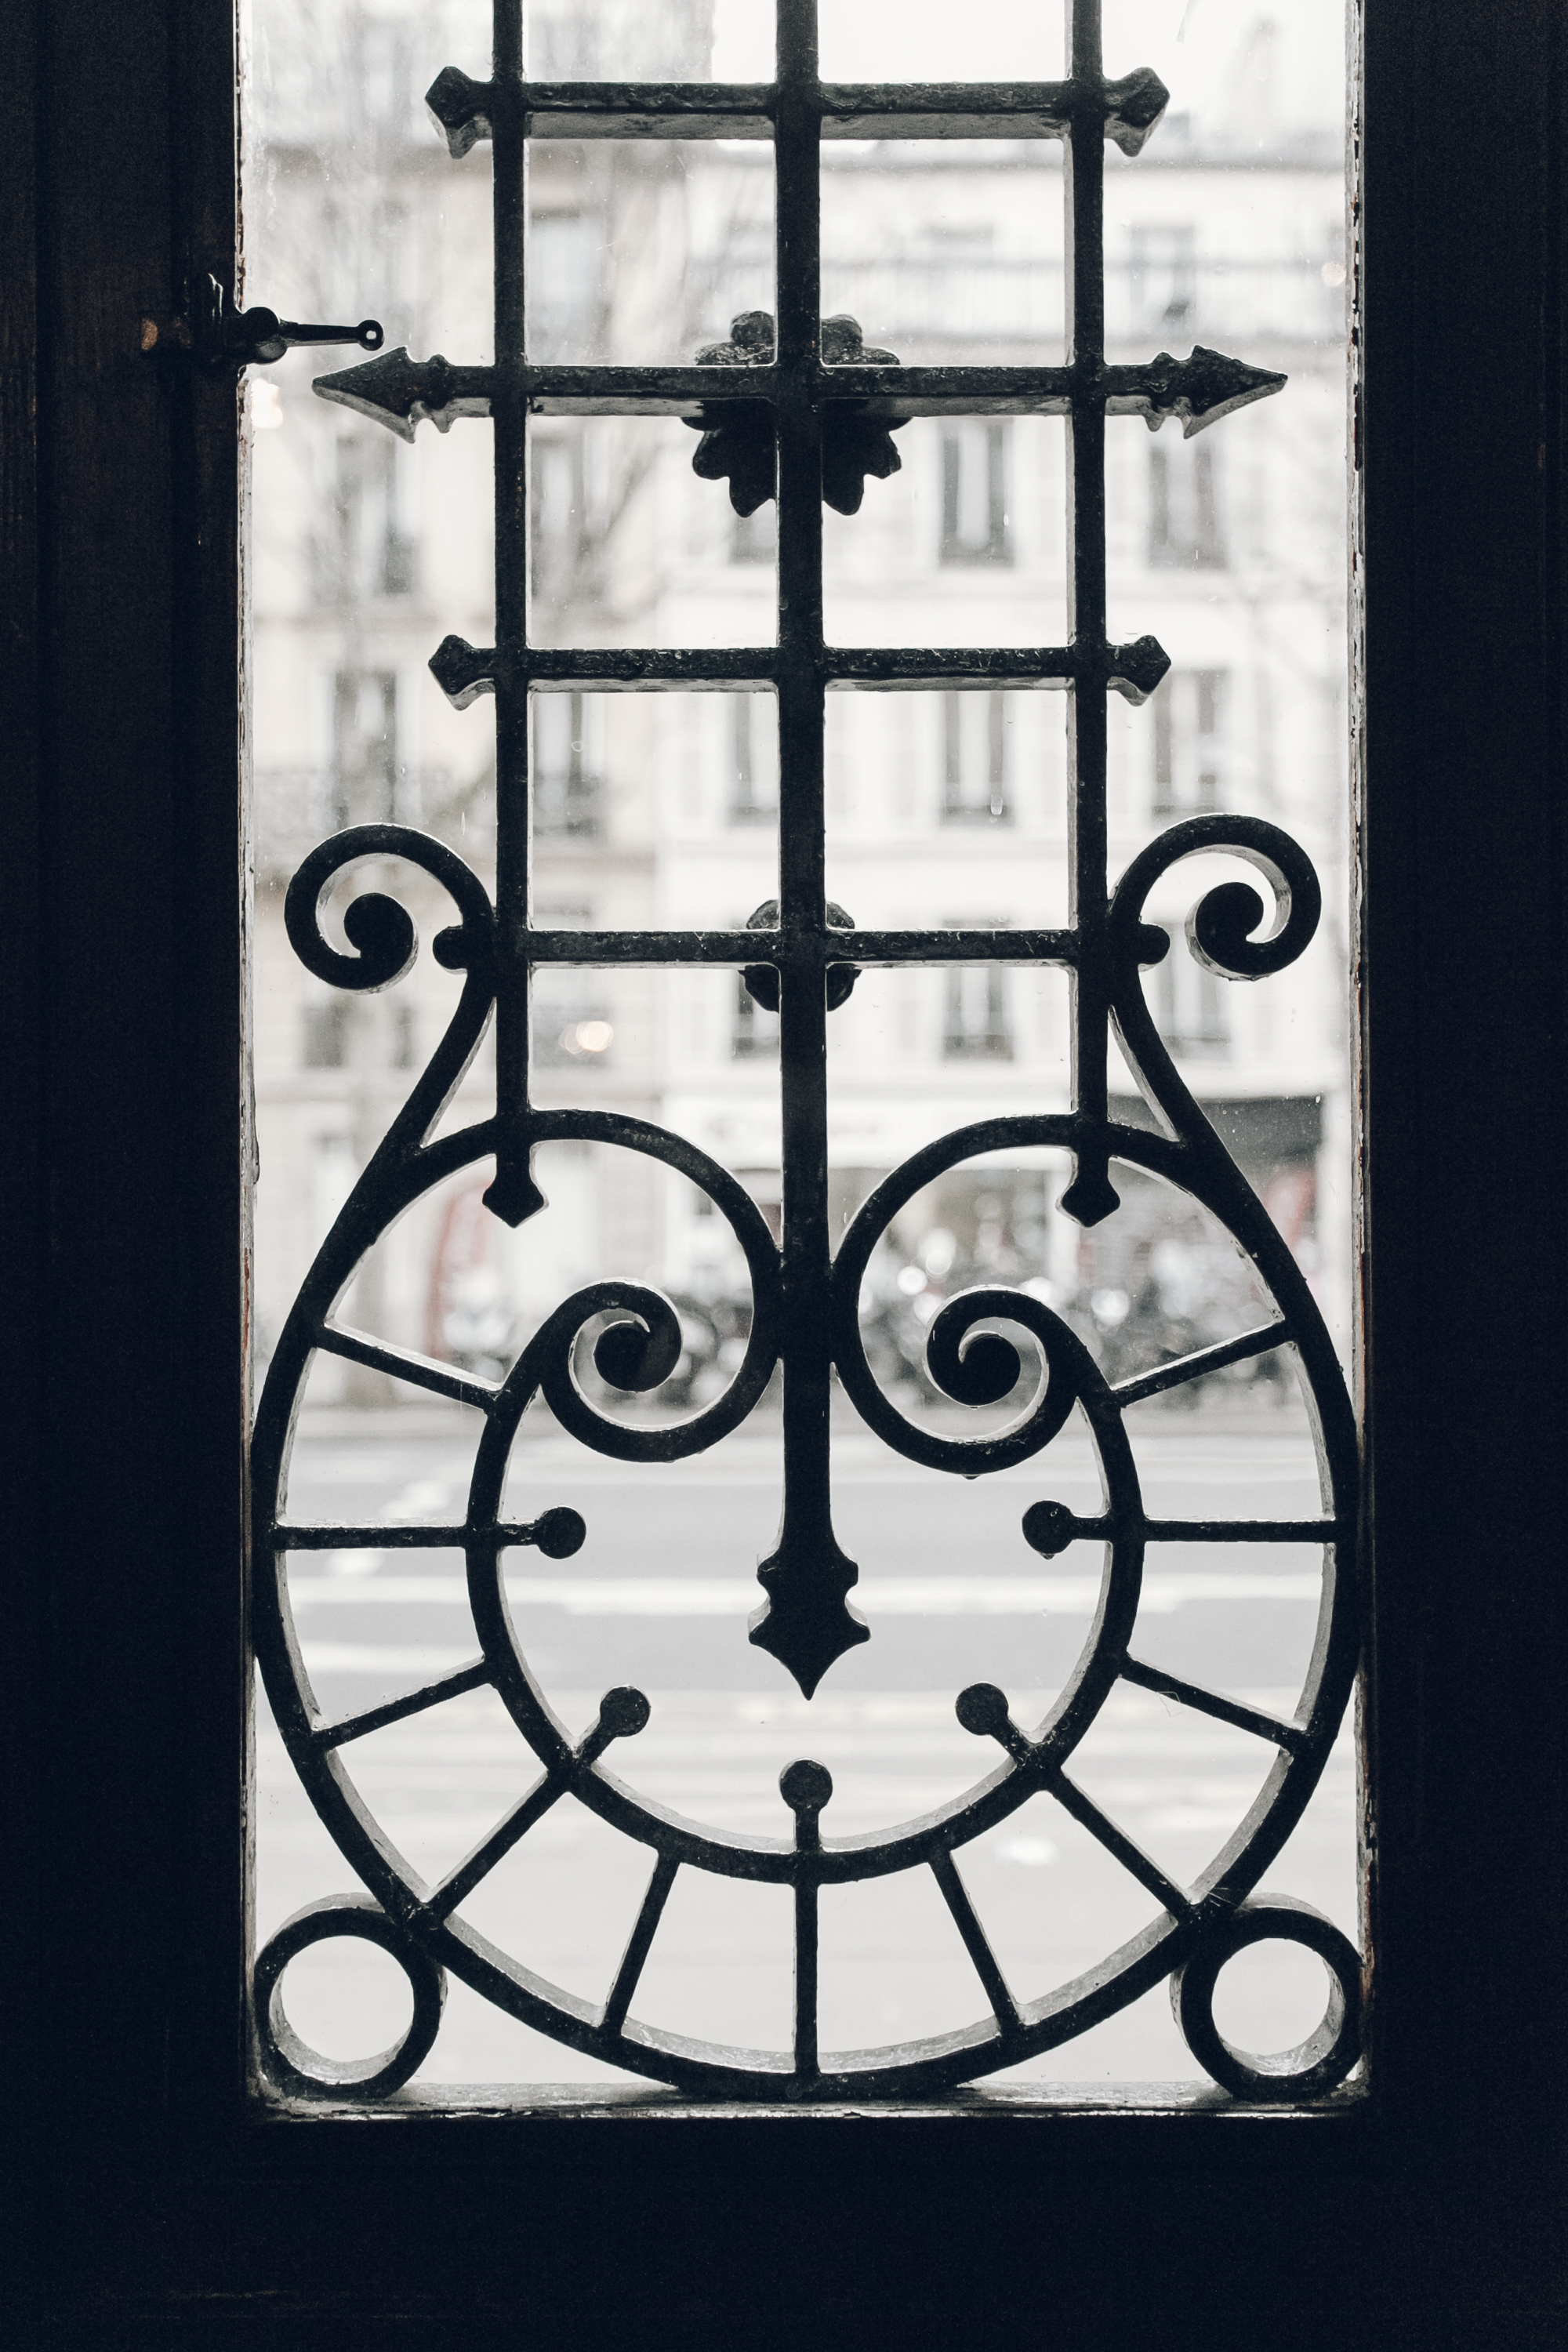 Paris in the Winter by Haarkon and Airbnb.